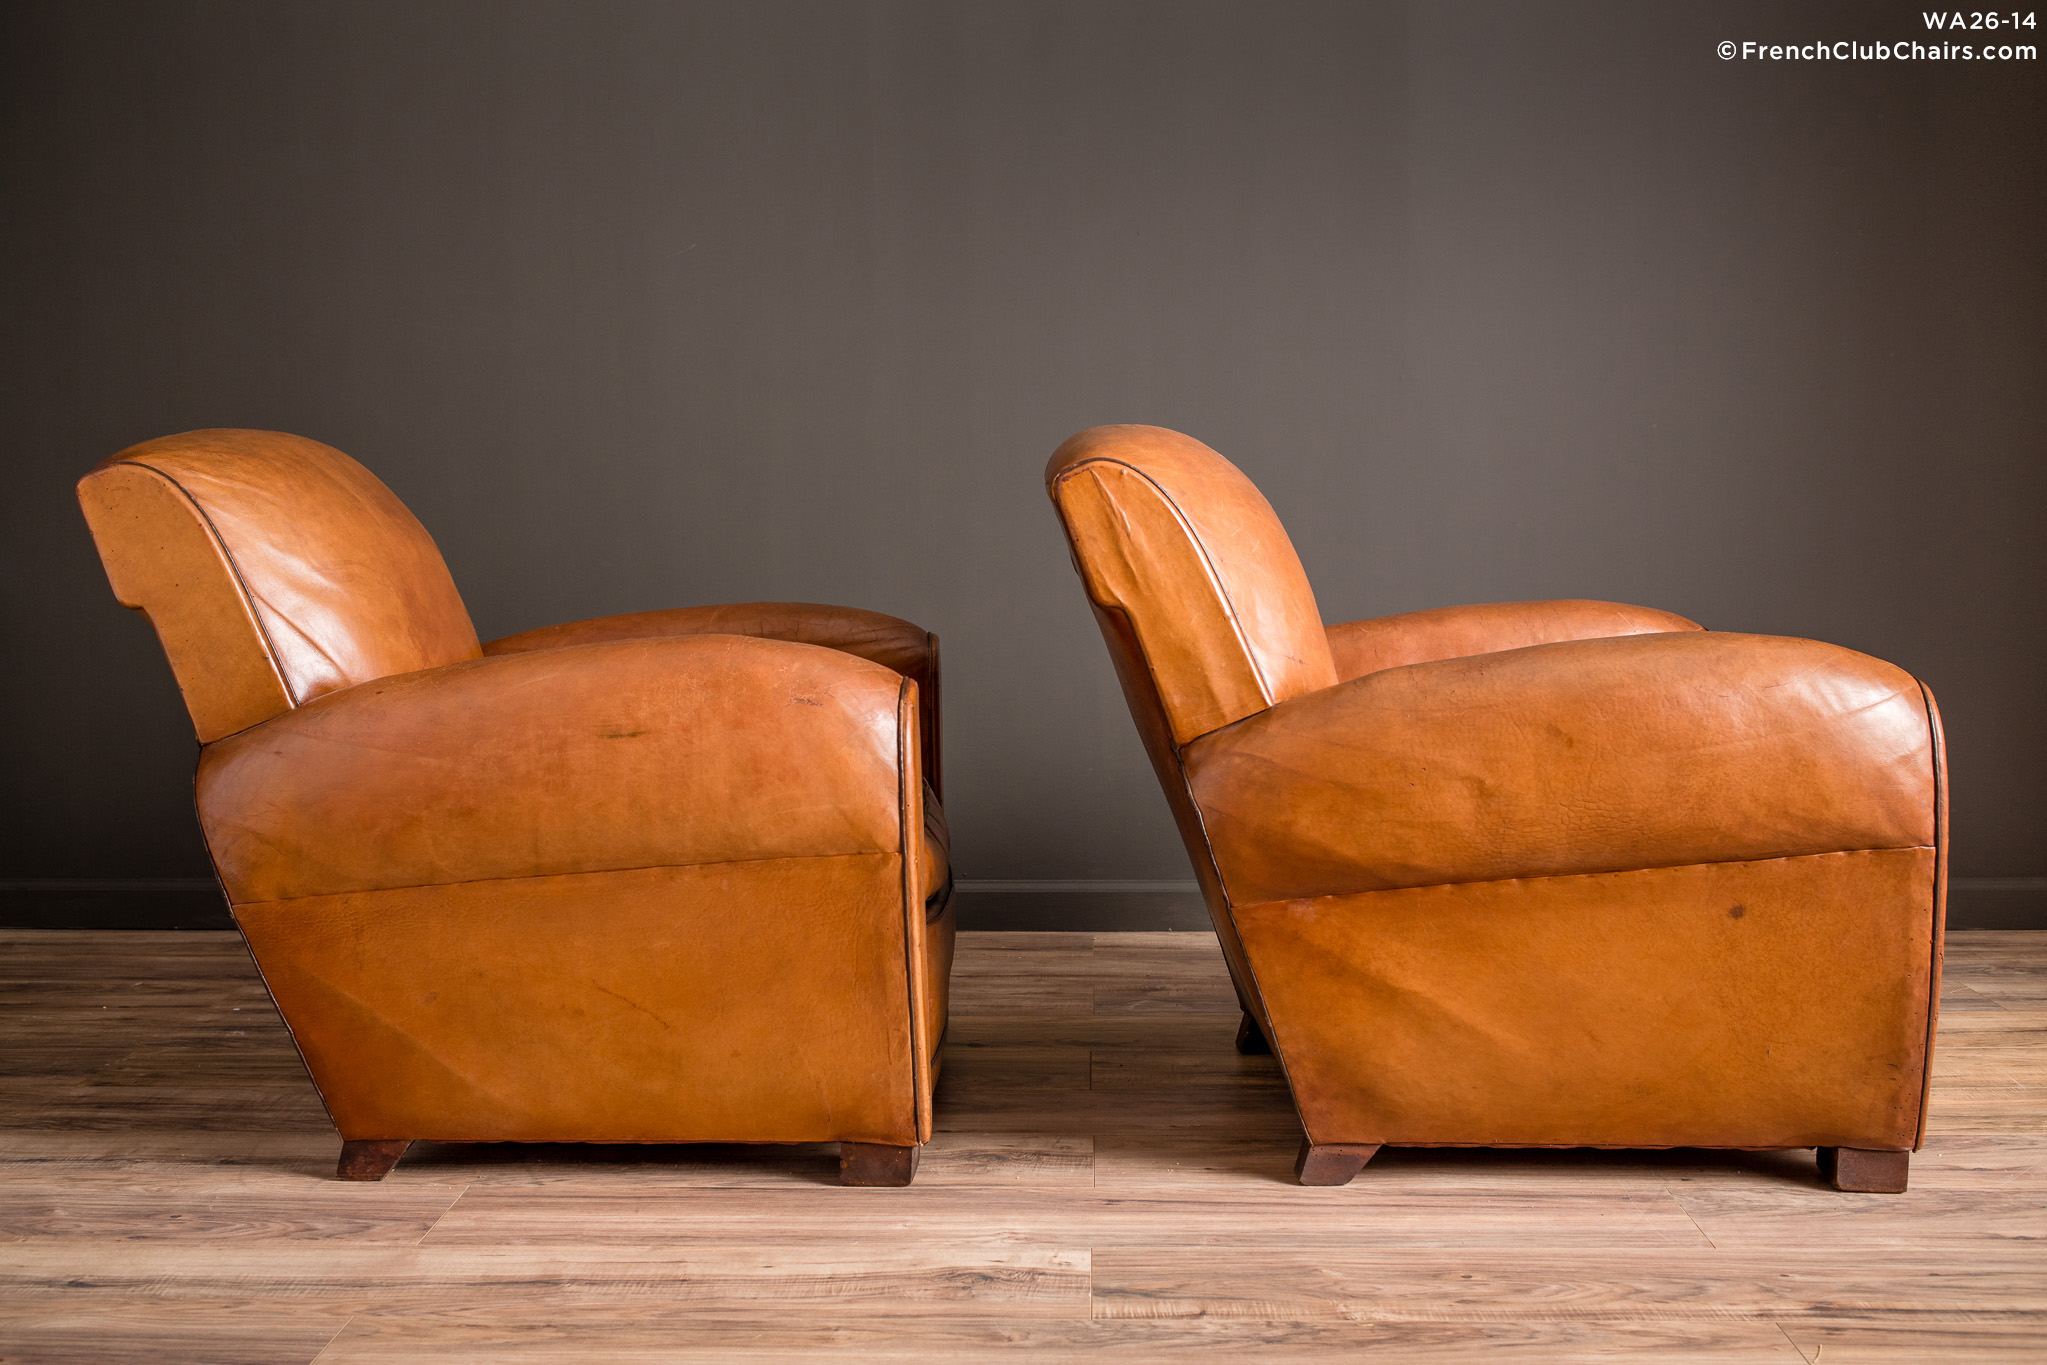 WA_26-14_Liseaux_Rollback_Caramel_Pair_R_3RT-v01-williams-antiks-leather-french-club-chair-wa_fcccom